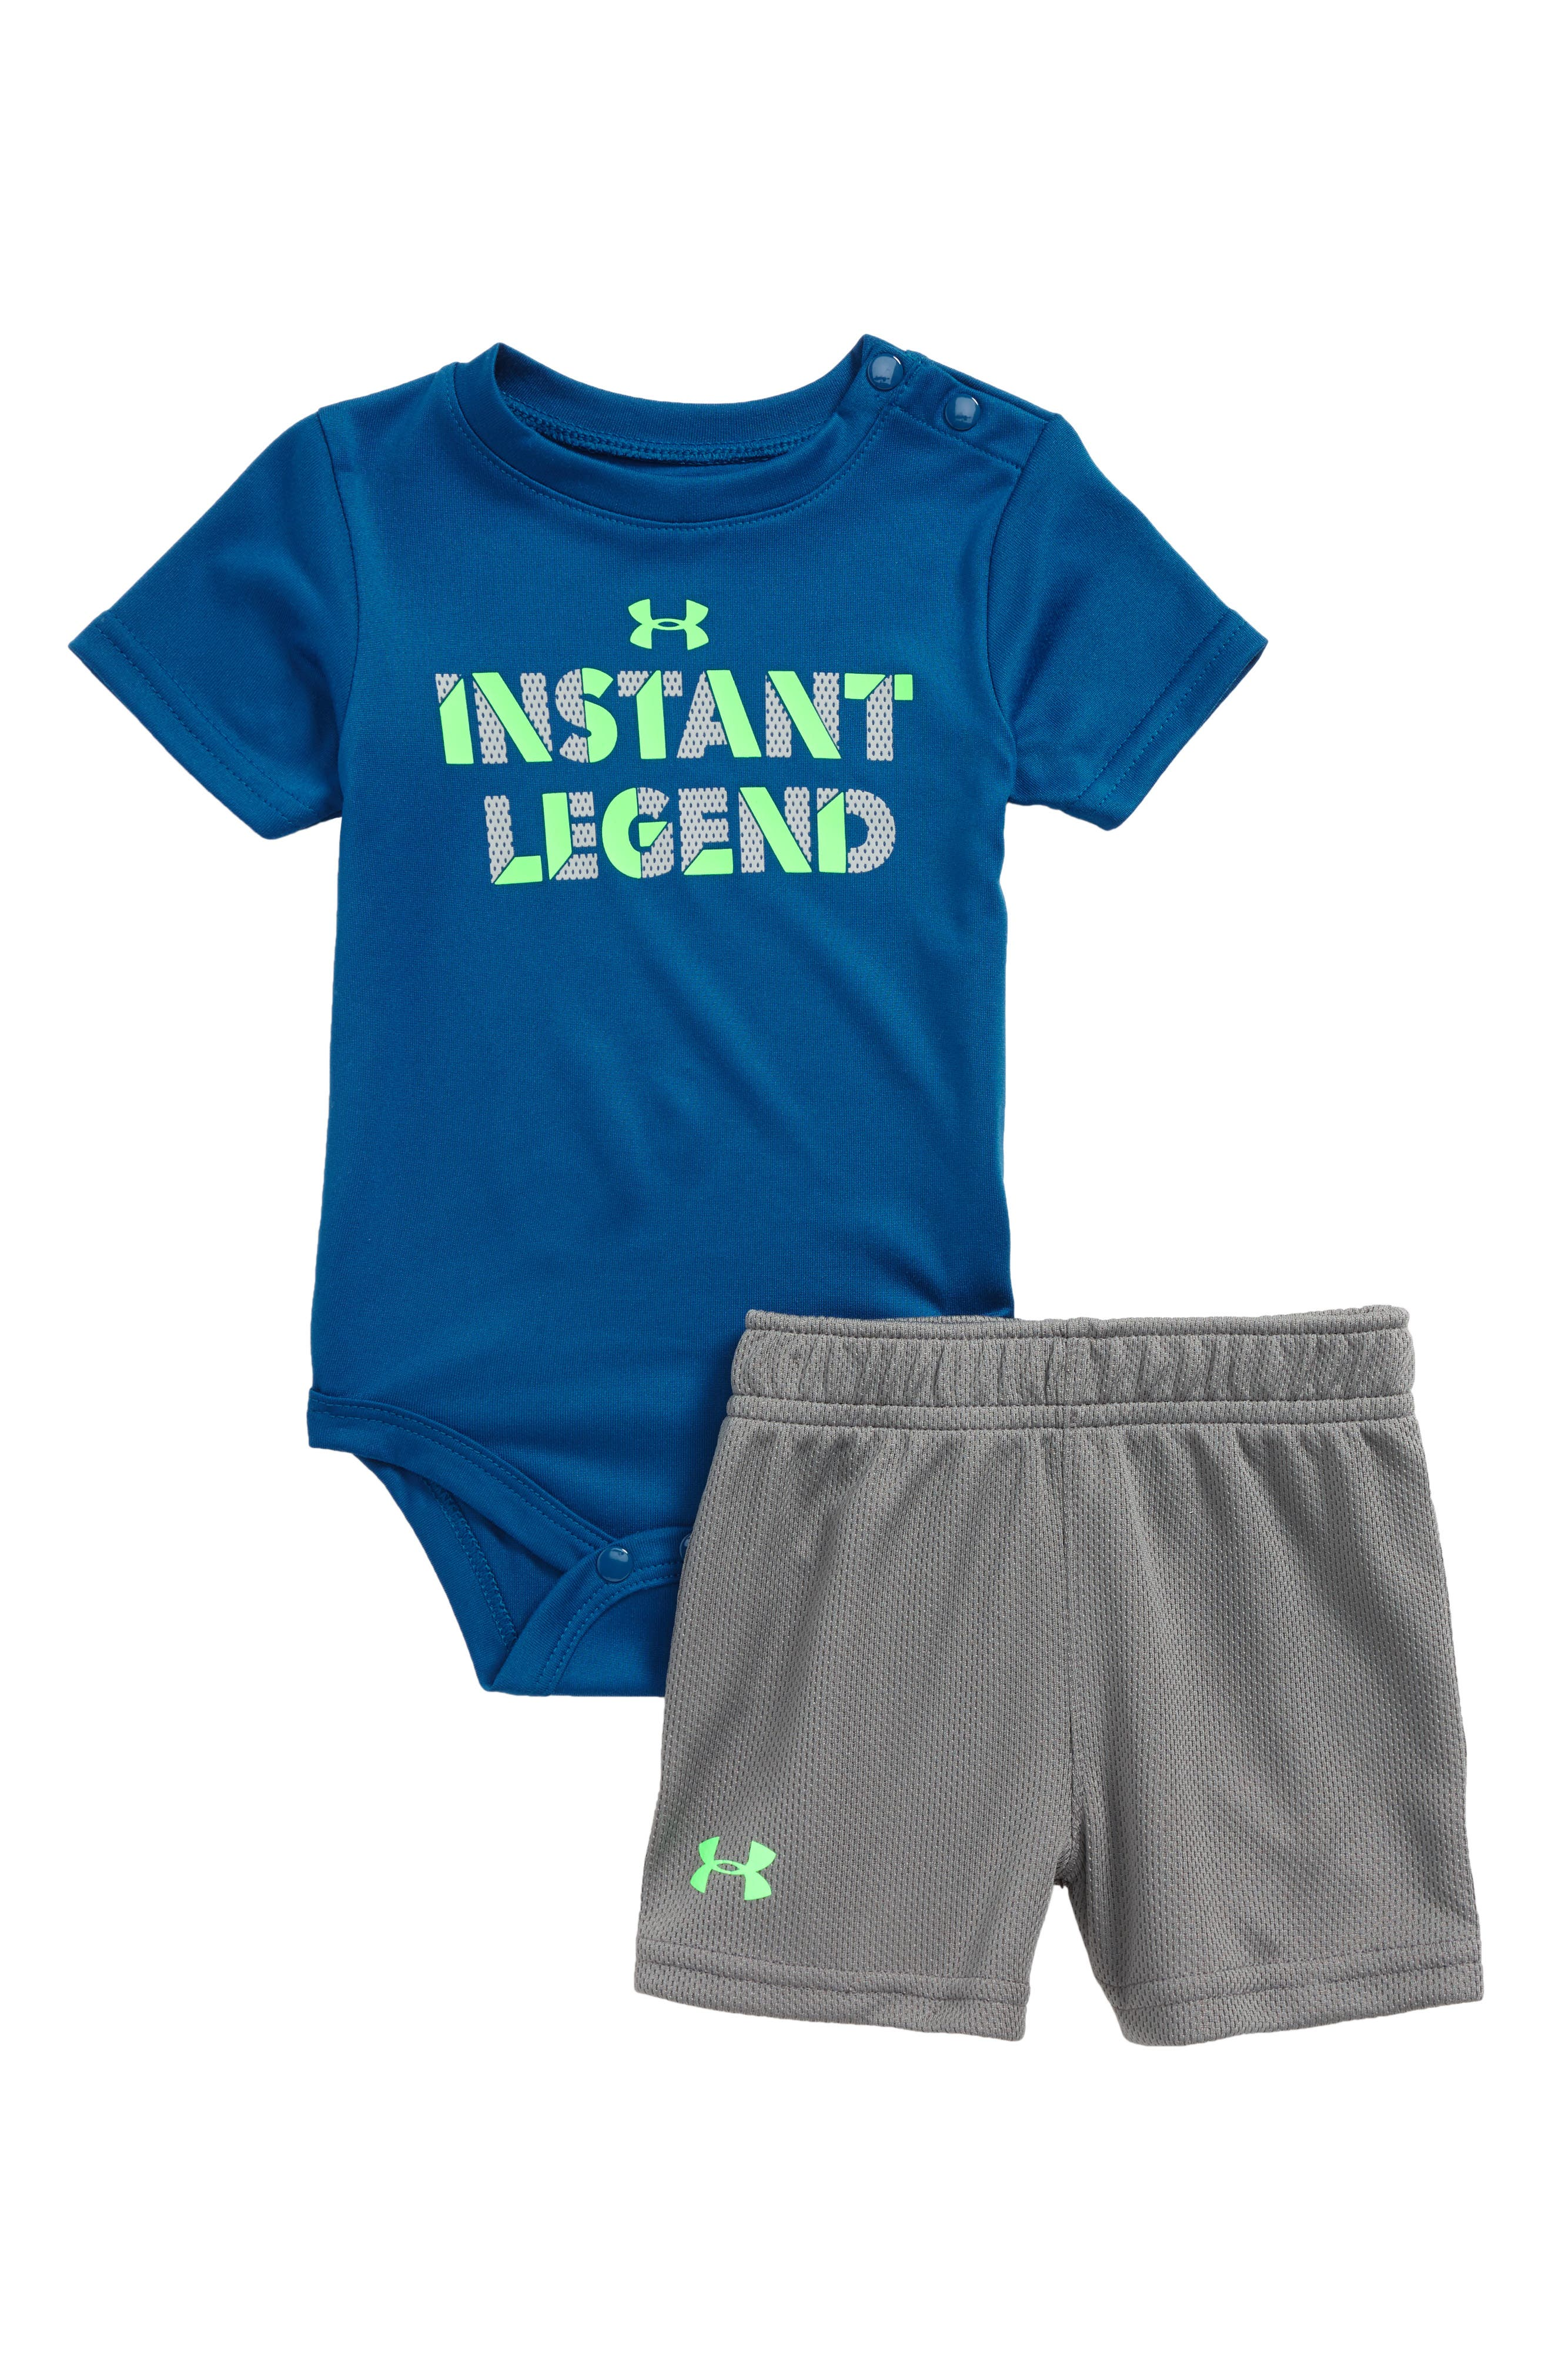 Main Image - Under Armour Instant Legend Bodysuit & Shorts Set (Baby Boys)